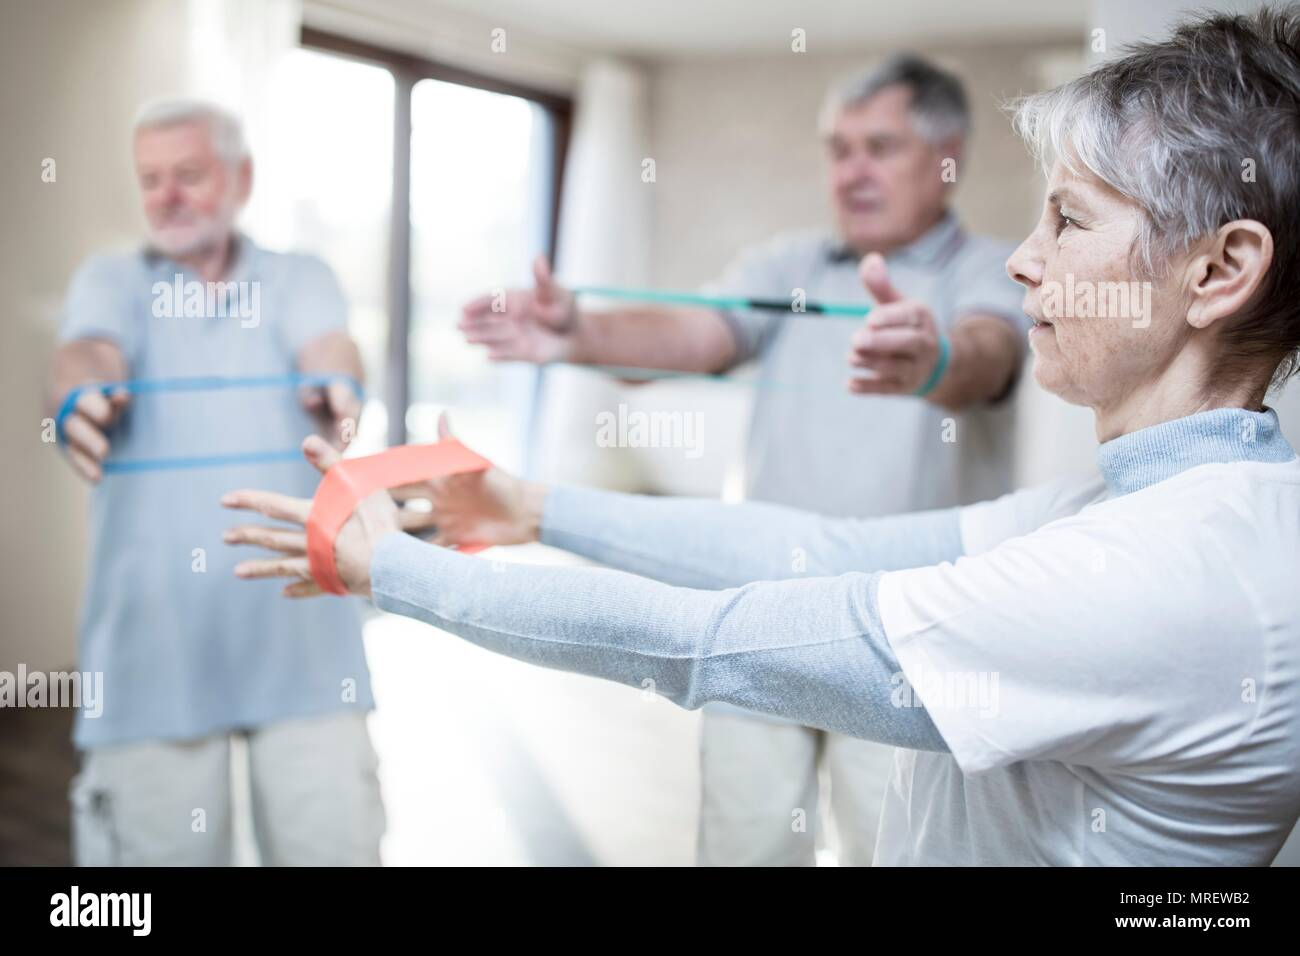 Senior adults using resistance bands in exercise class. - Stock Image